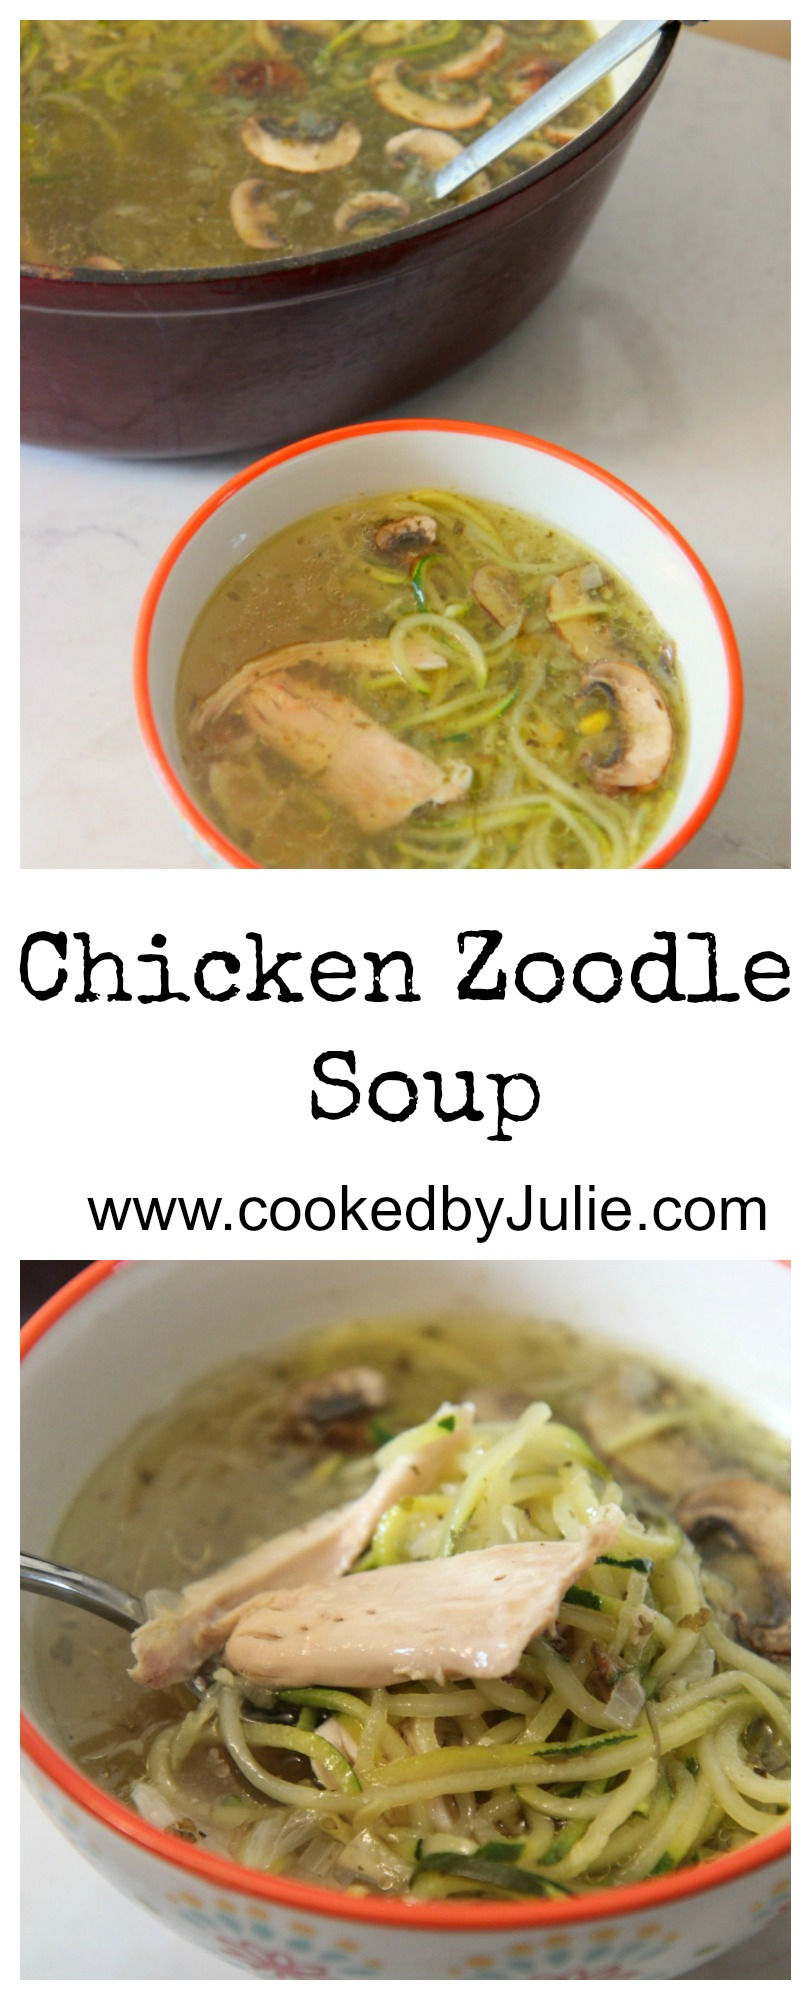 Chicken Zoodle Soup Recipe | Chicken Soup with Zucchini Noodles